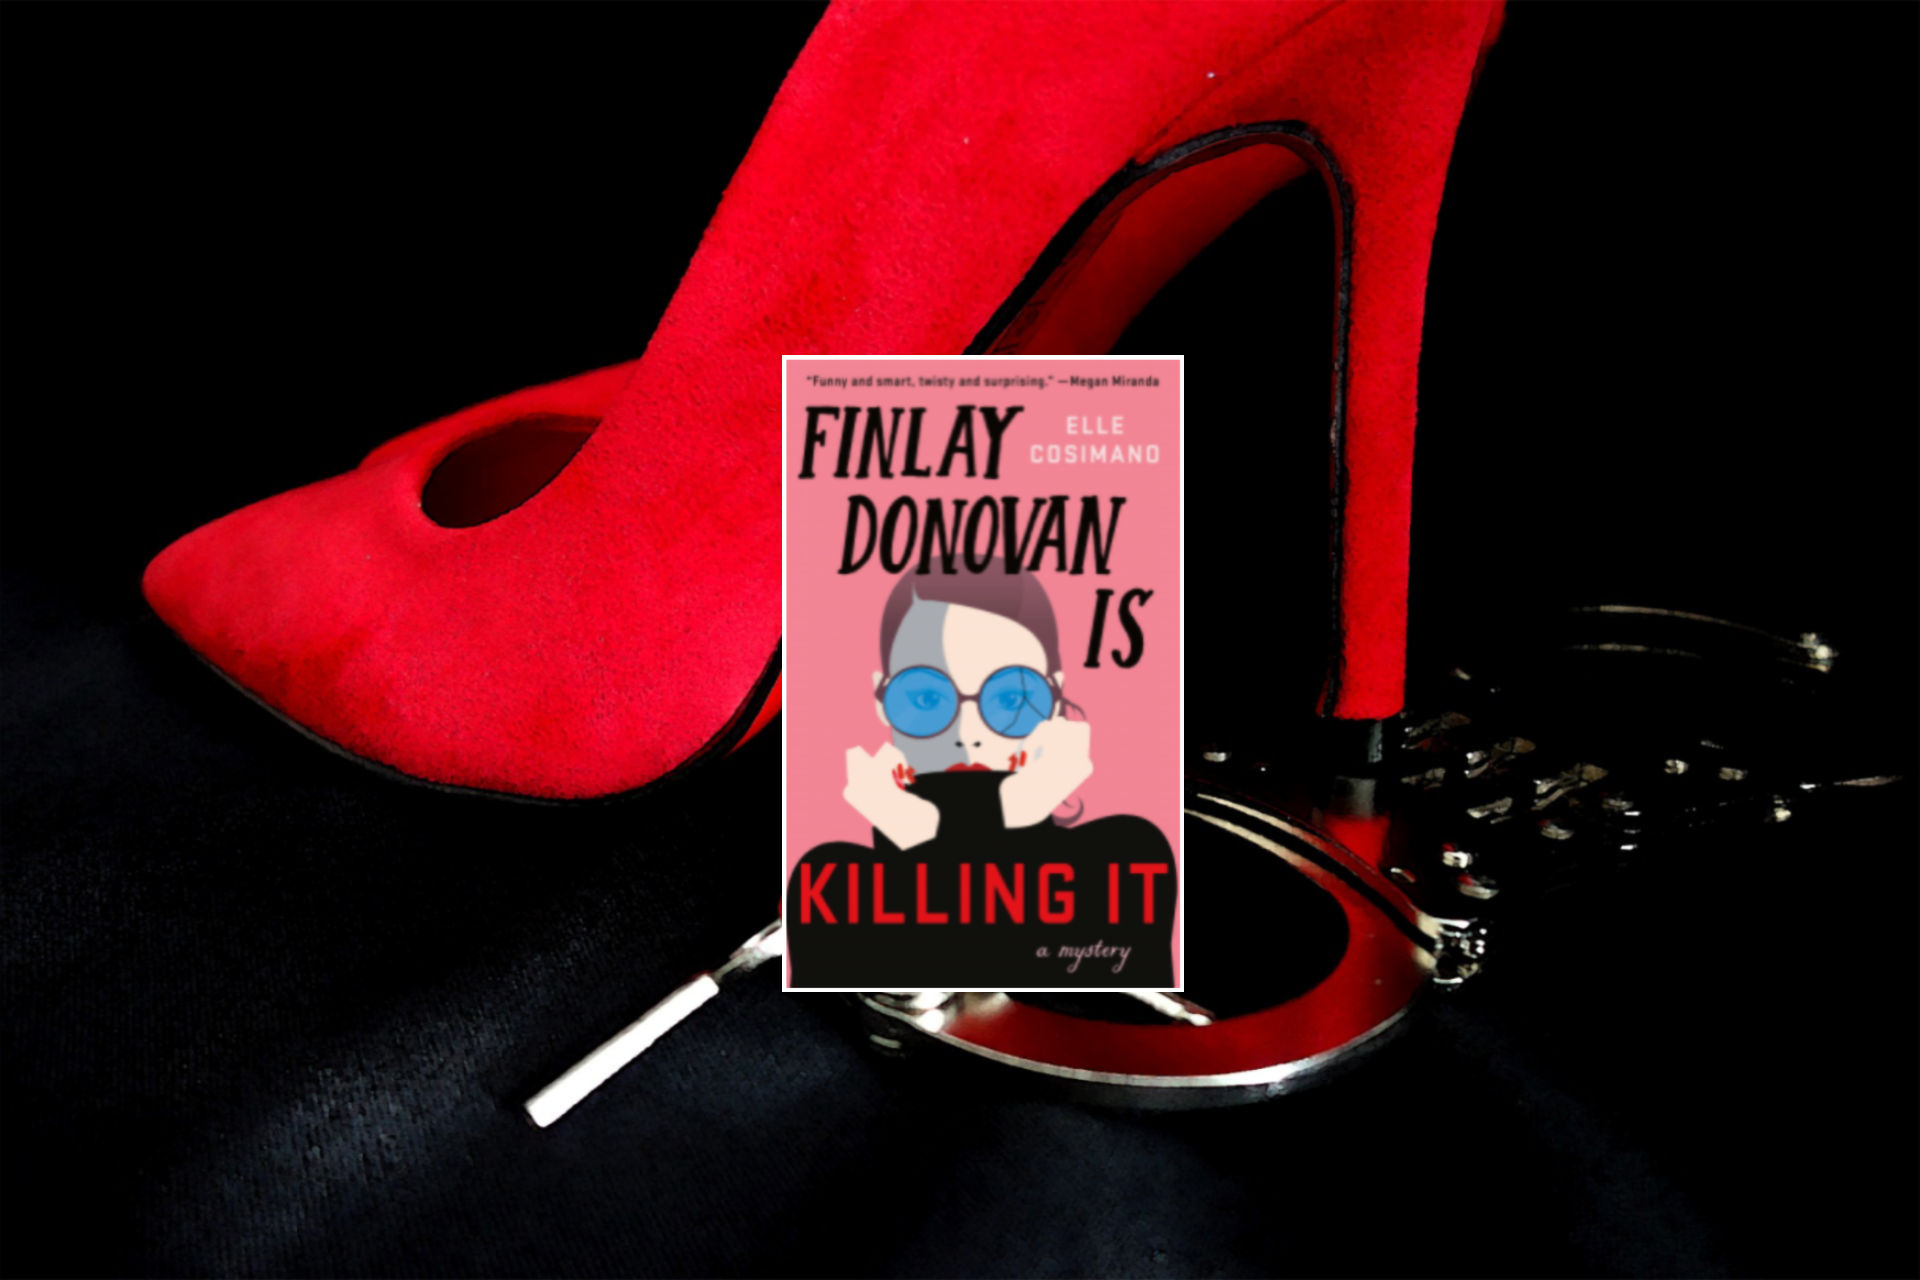 Finlay Donovan Is Killing it by Elle Cosimano - A Book Review